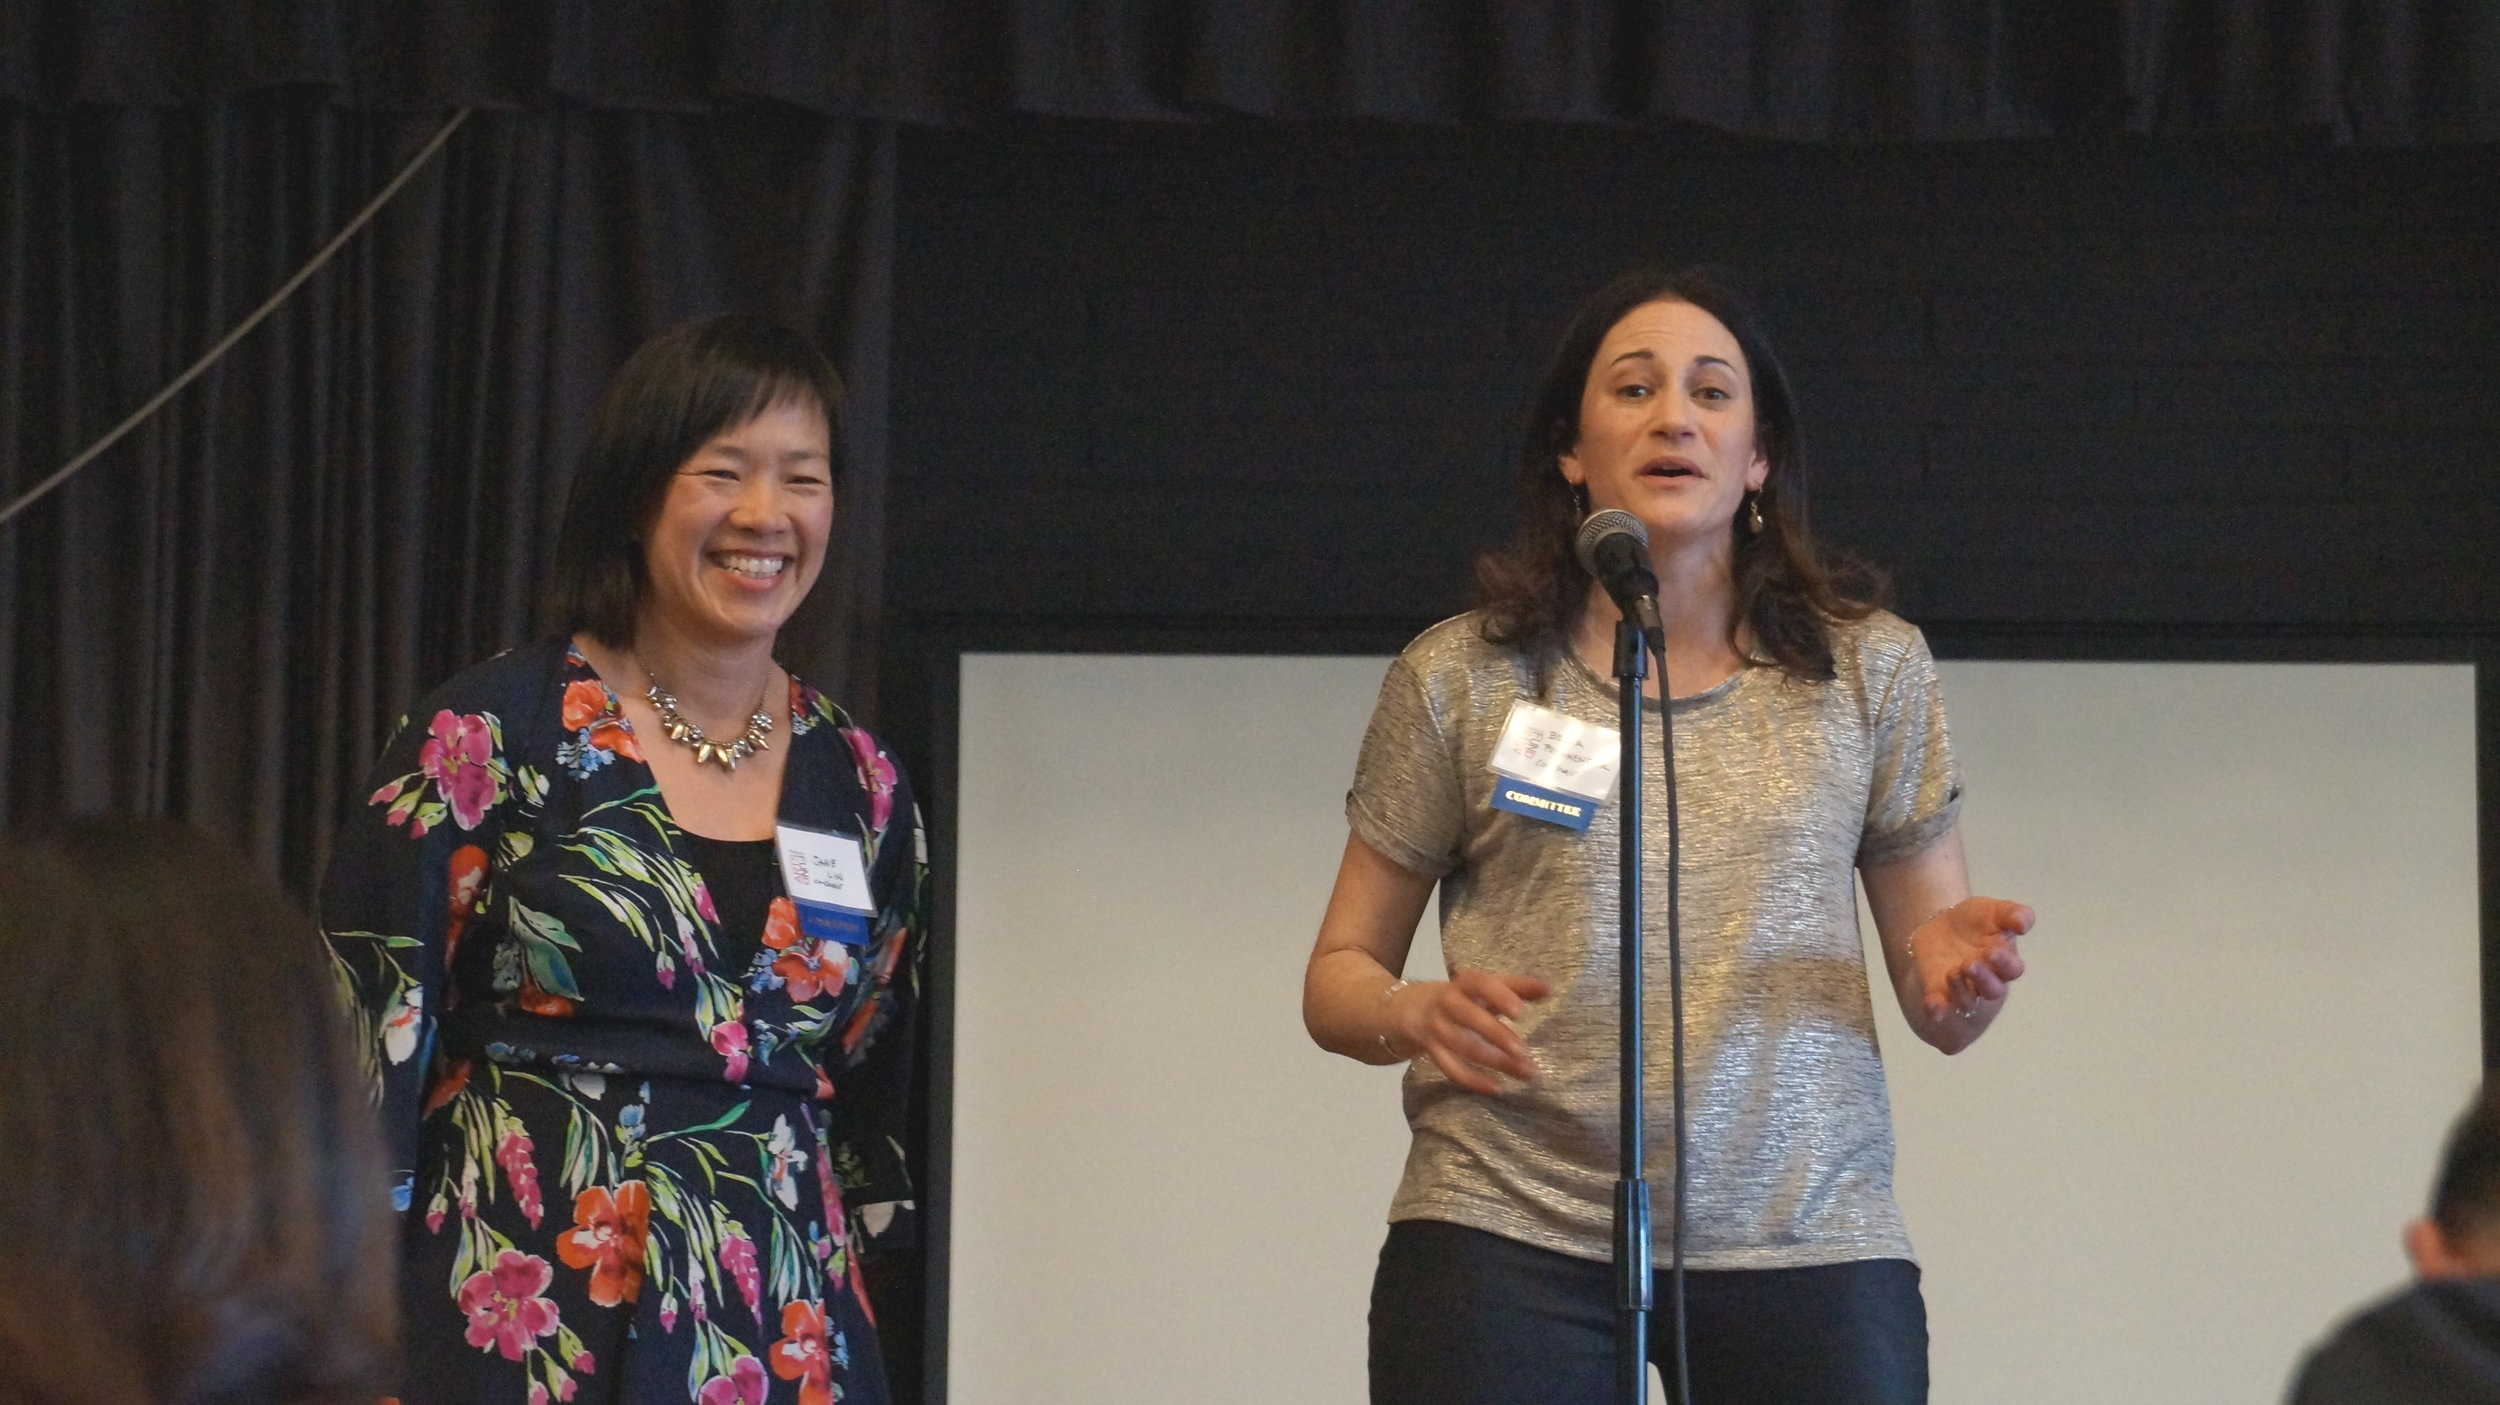 Jane Lin & Becca  Posamenier, PAF Co-Chairs